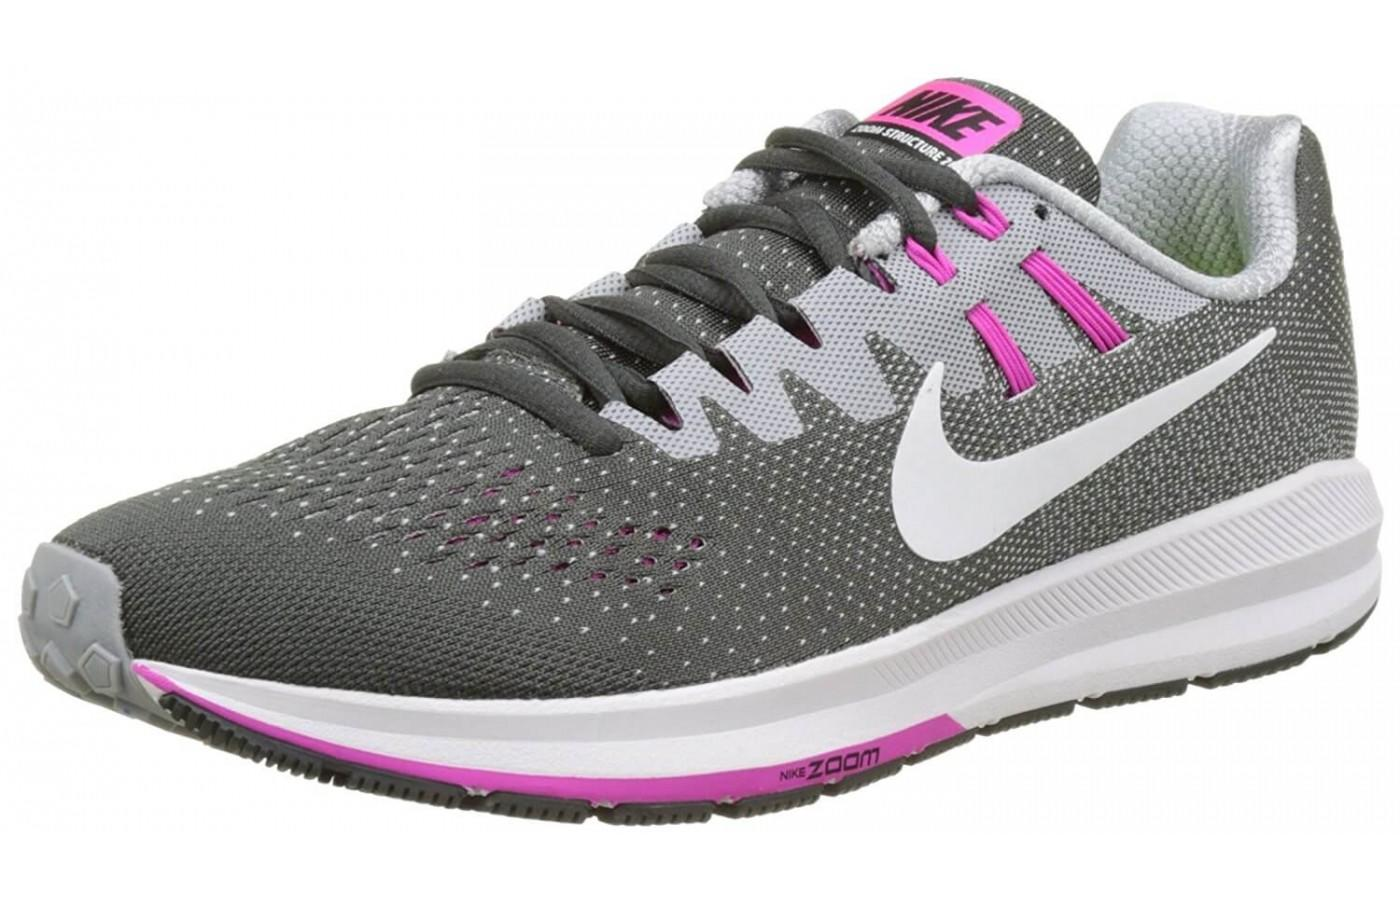 promo code ed803 ece12 A good look at the left side of Nike air zoom structure 20 ...